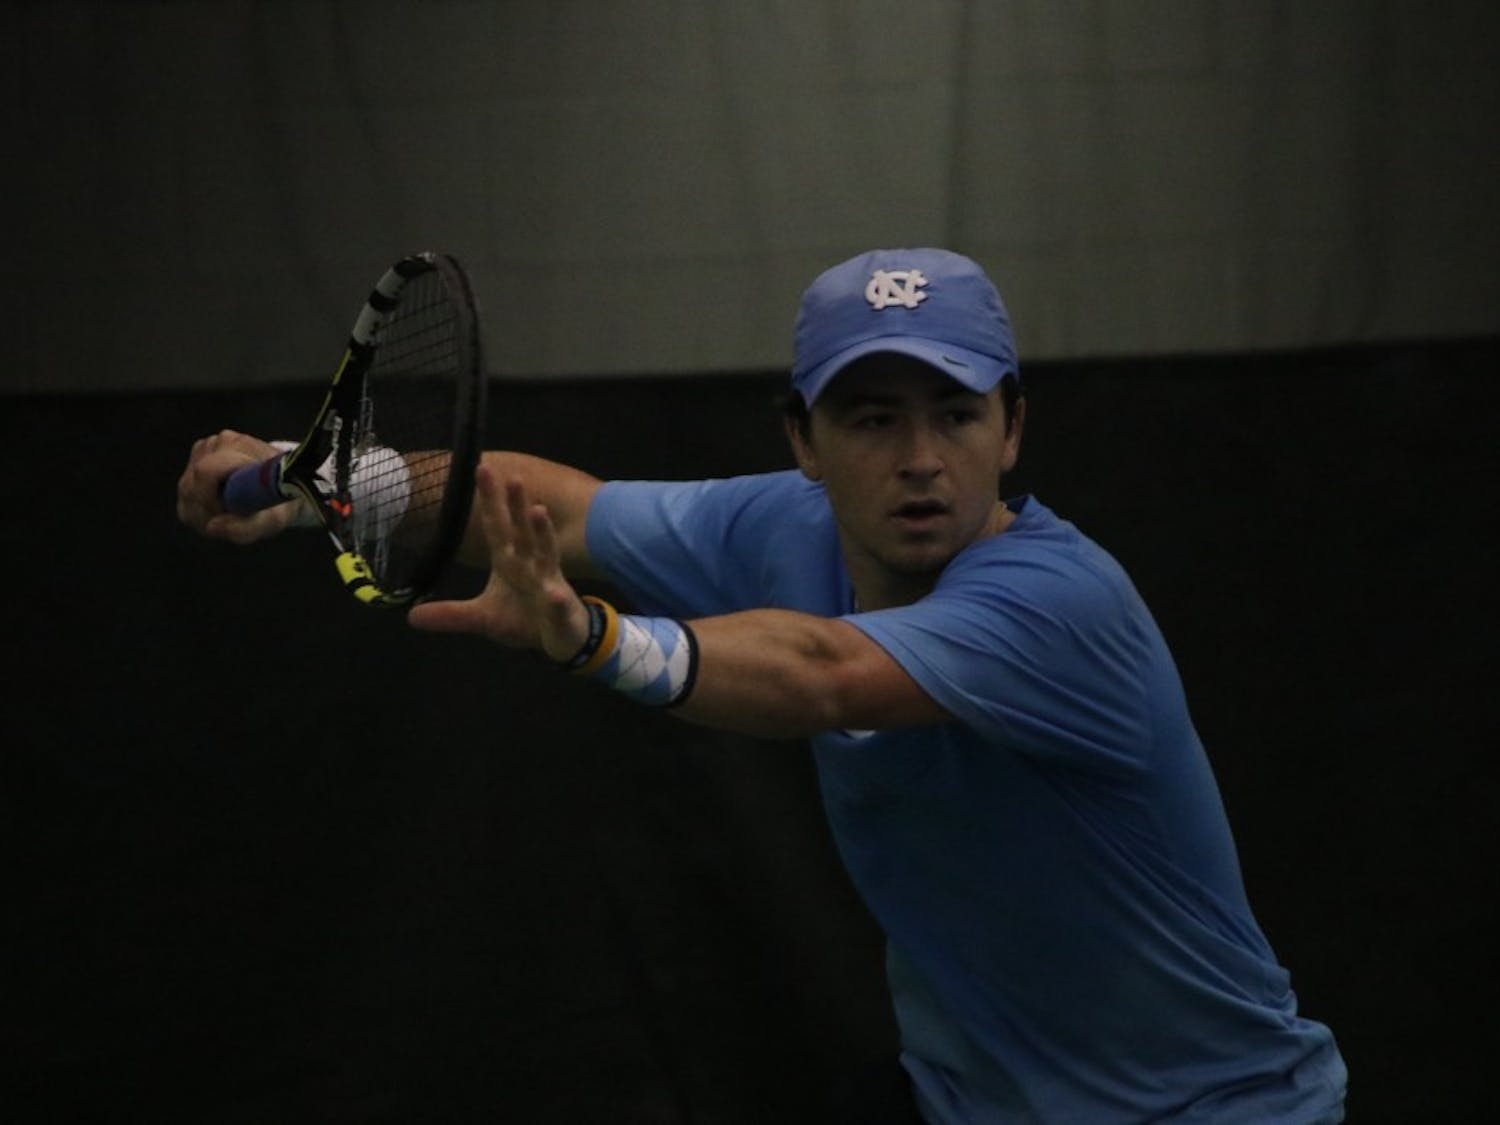 Junior Ronnie Schneider prepares to return a volley with a forehand hit in UNC men's tennis's route of Wofford on Sunday.